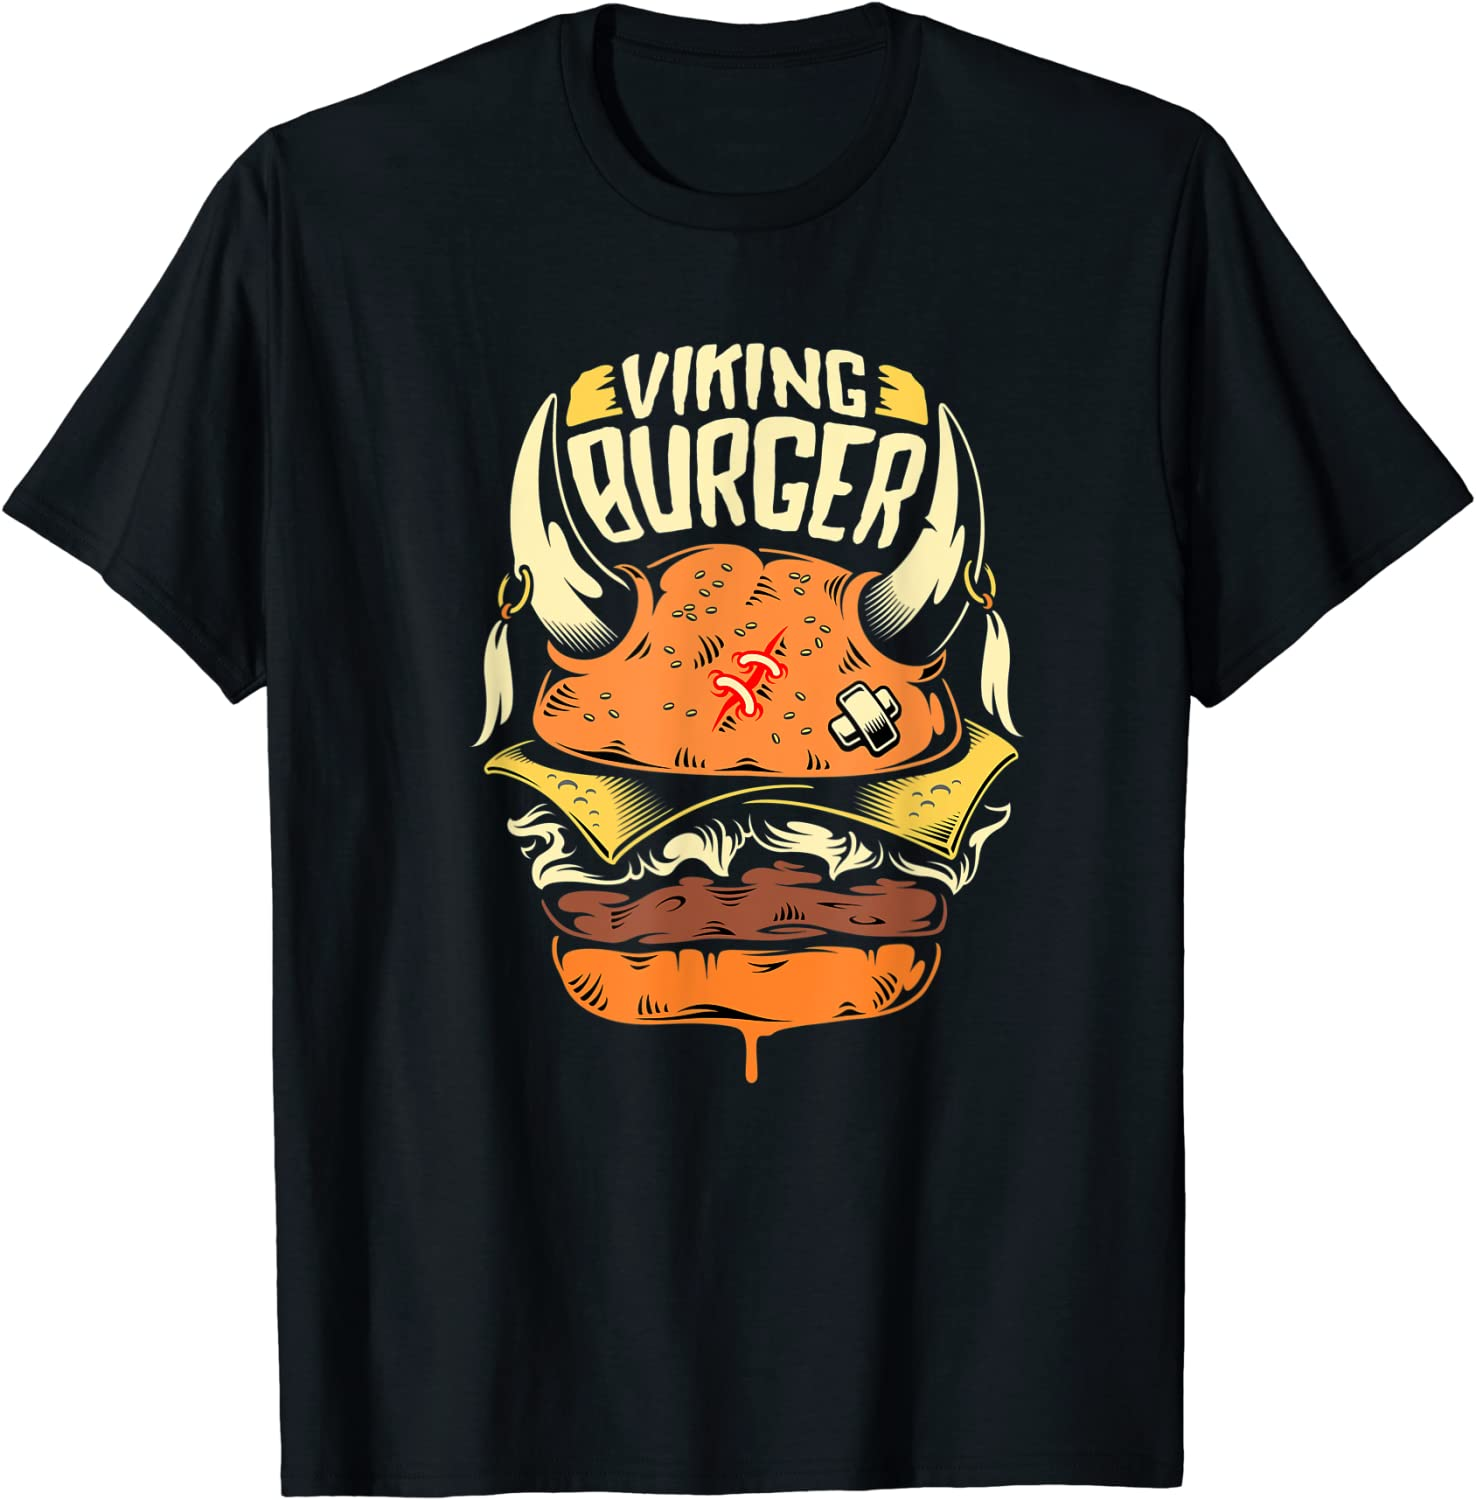 Tee Viking Burger Nordic Food Junk Warrior Fries Blood Retro T-Shirt